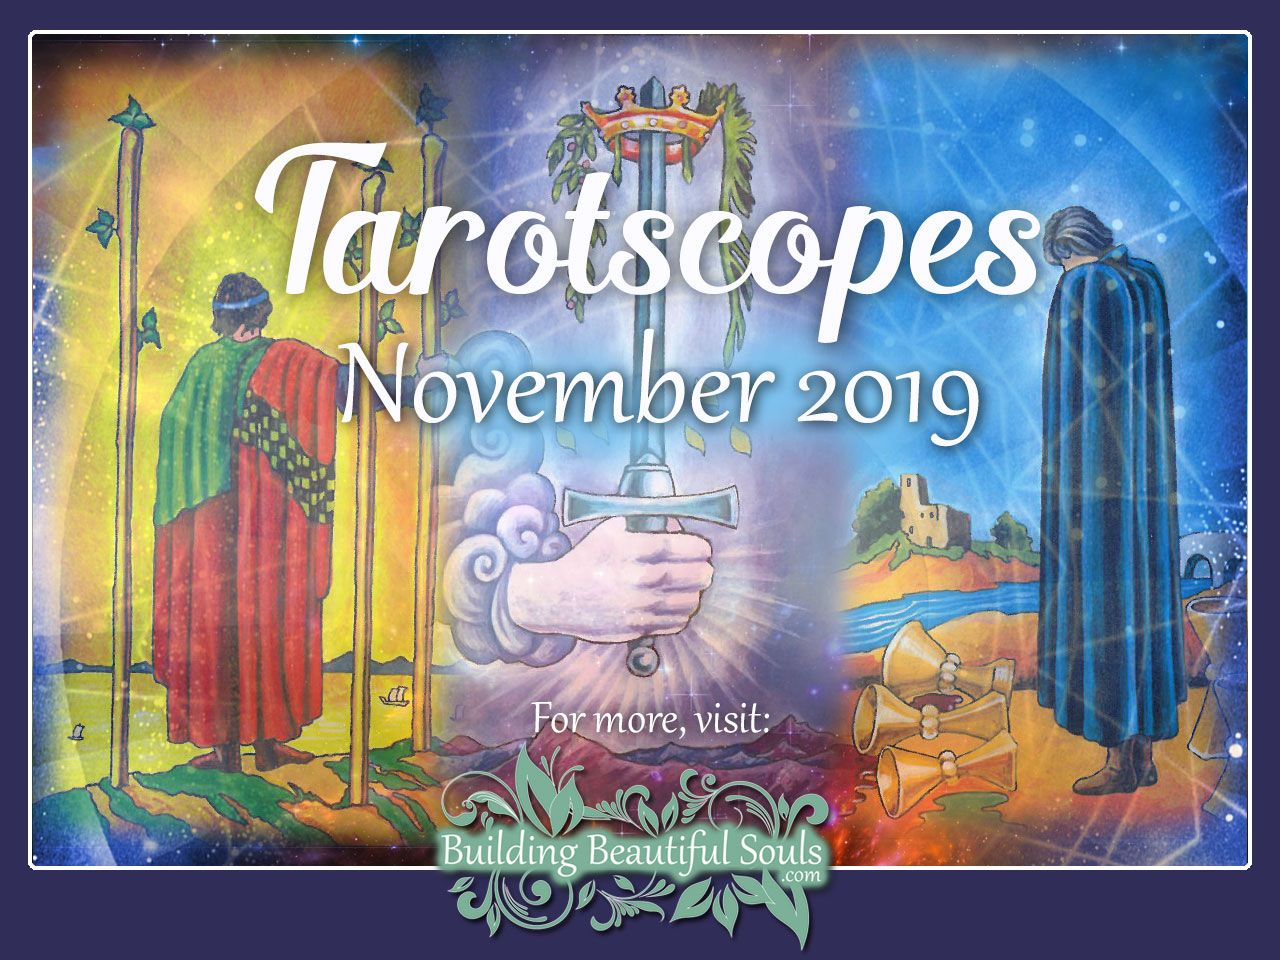 tarotscopes november 2019 1280x960